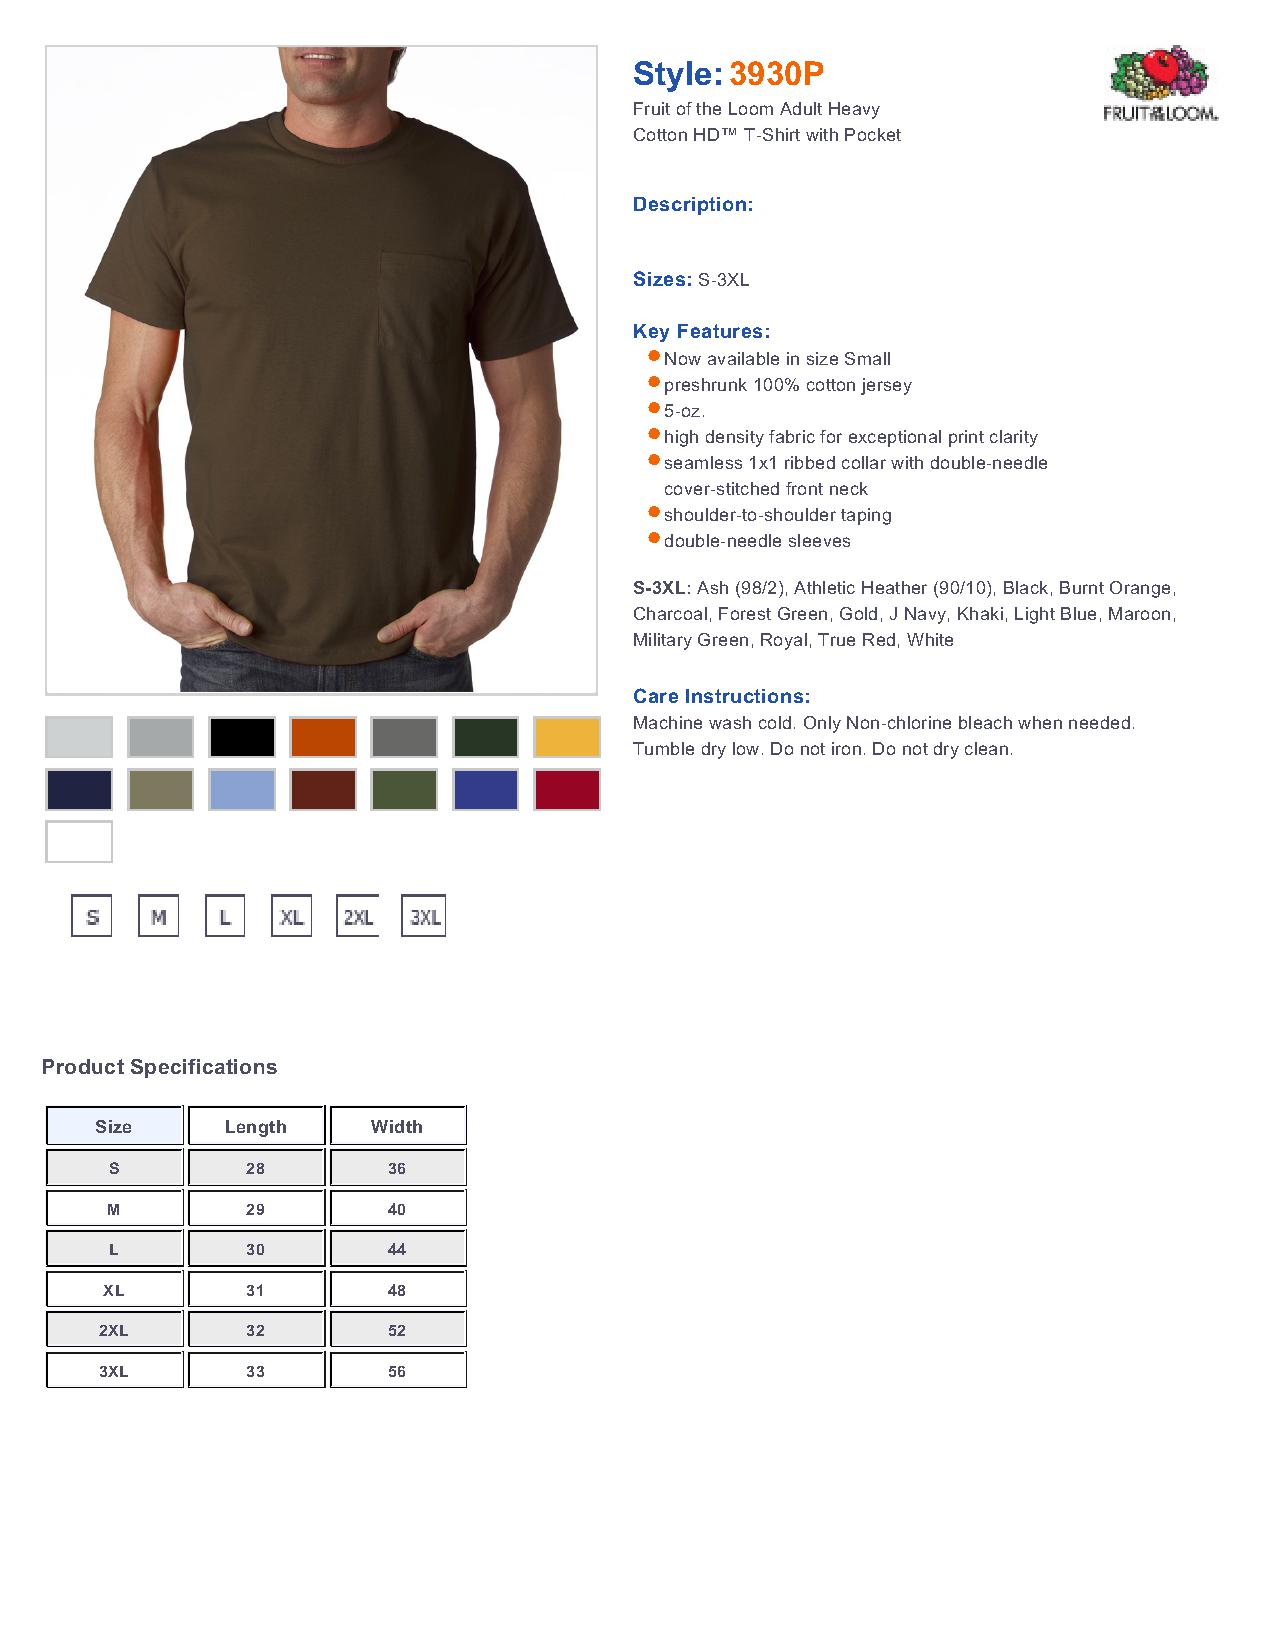 77b95fda Fruit of the Loom 3930P 5.6 oz. Pocket T-Shirt $5.42 - Men's T-Shirts